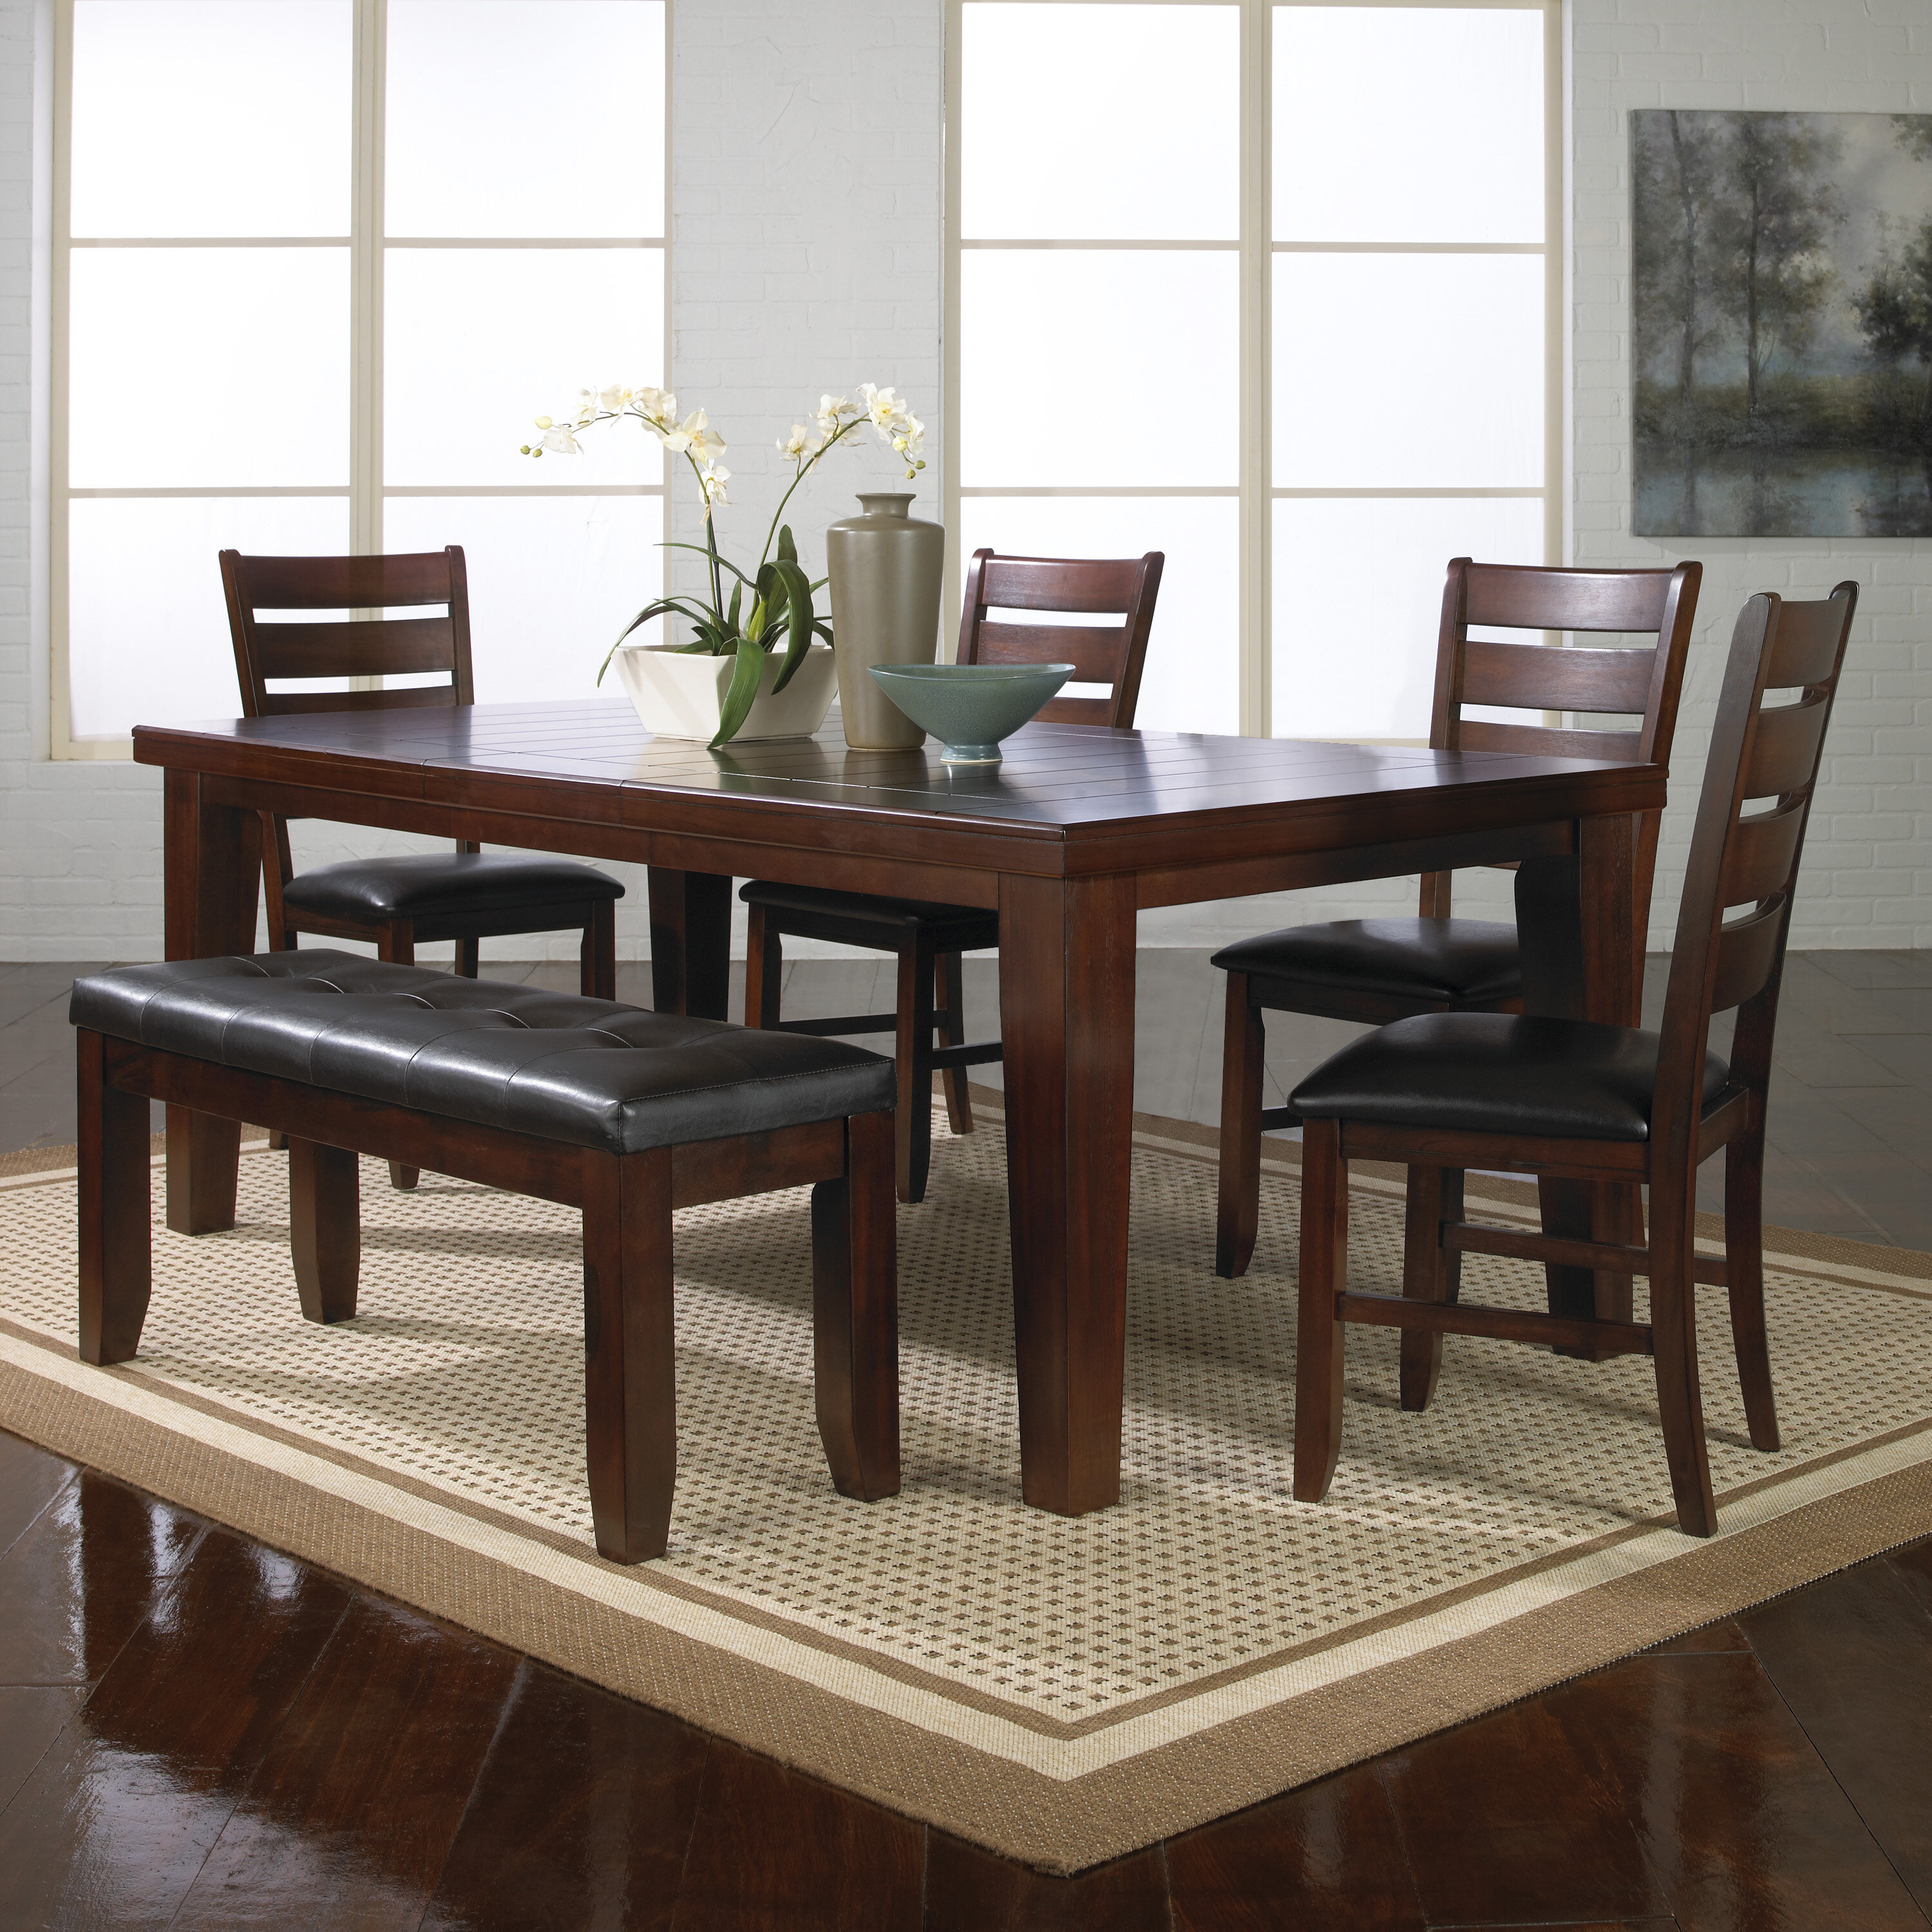 Stephentown 10 Piece Solid Wood Dining Set